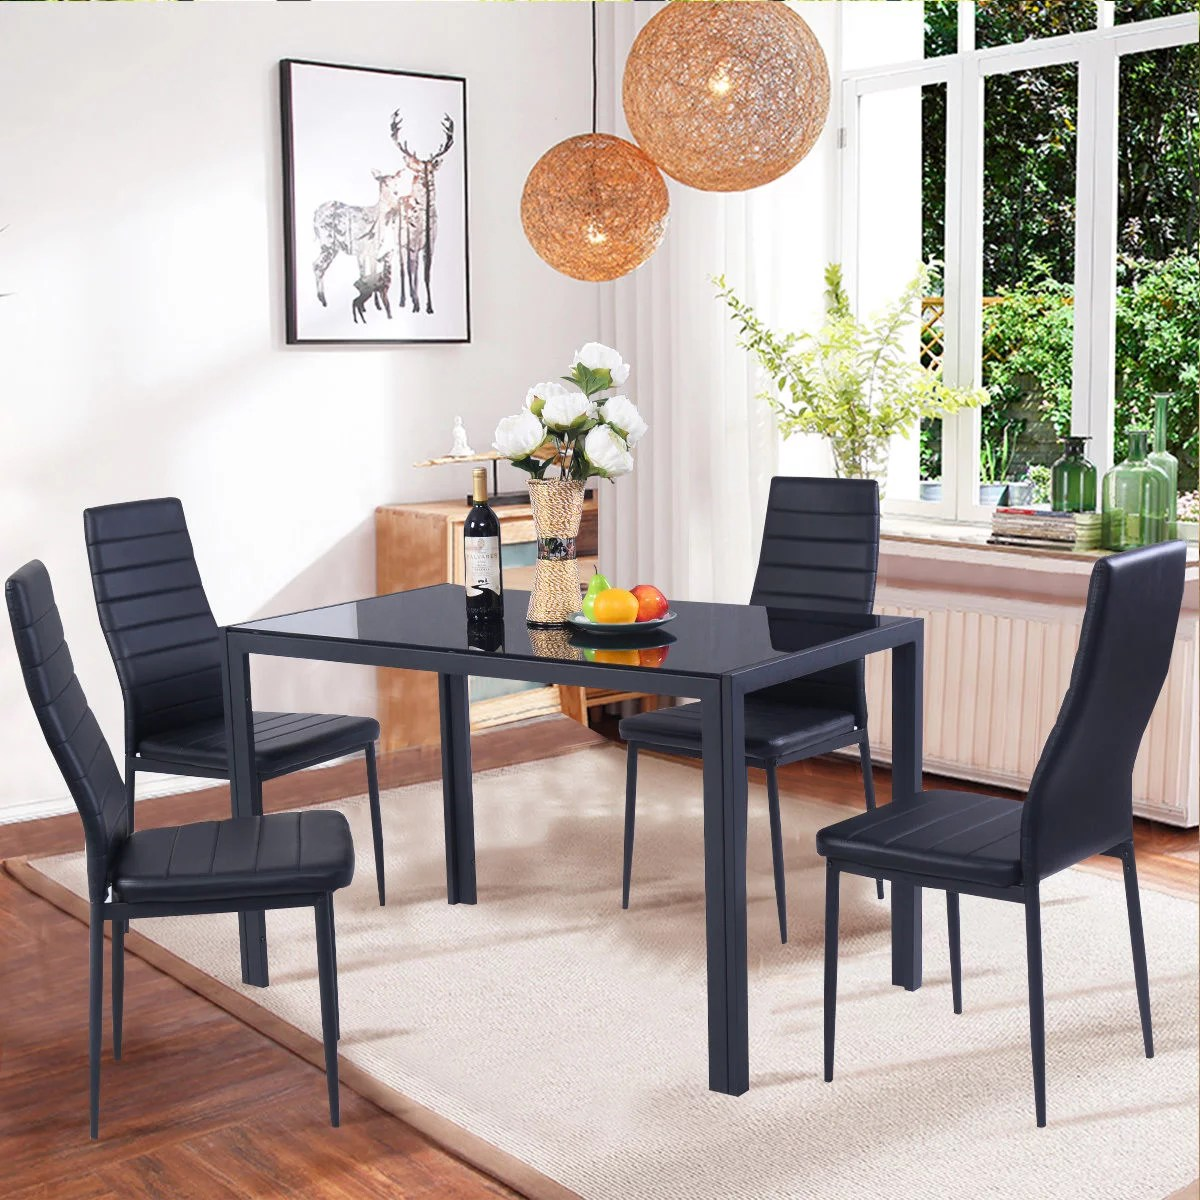 Table Kitchen Costway 5 Piece Kitchen Dining Set Glass Metal Table And 4 Chairs Breakfast Furniture